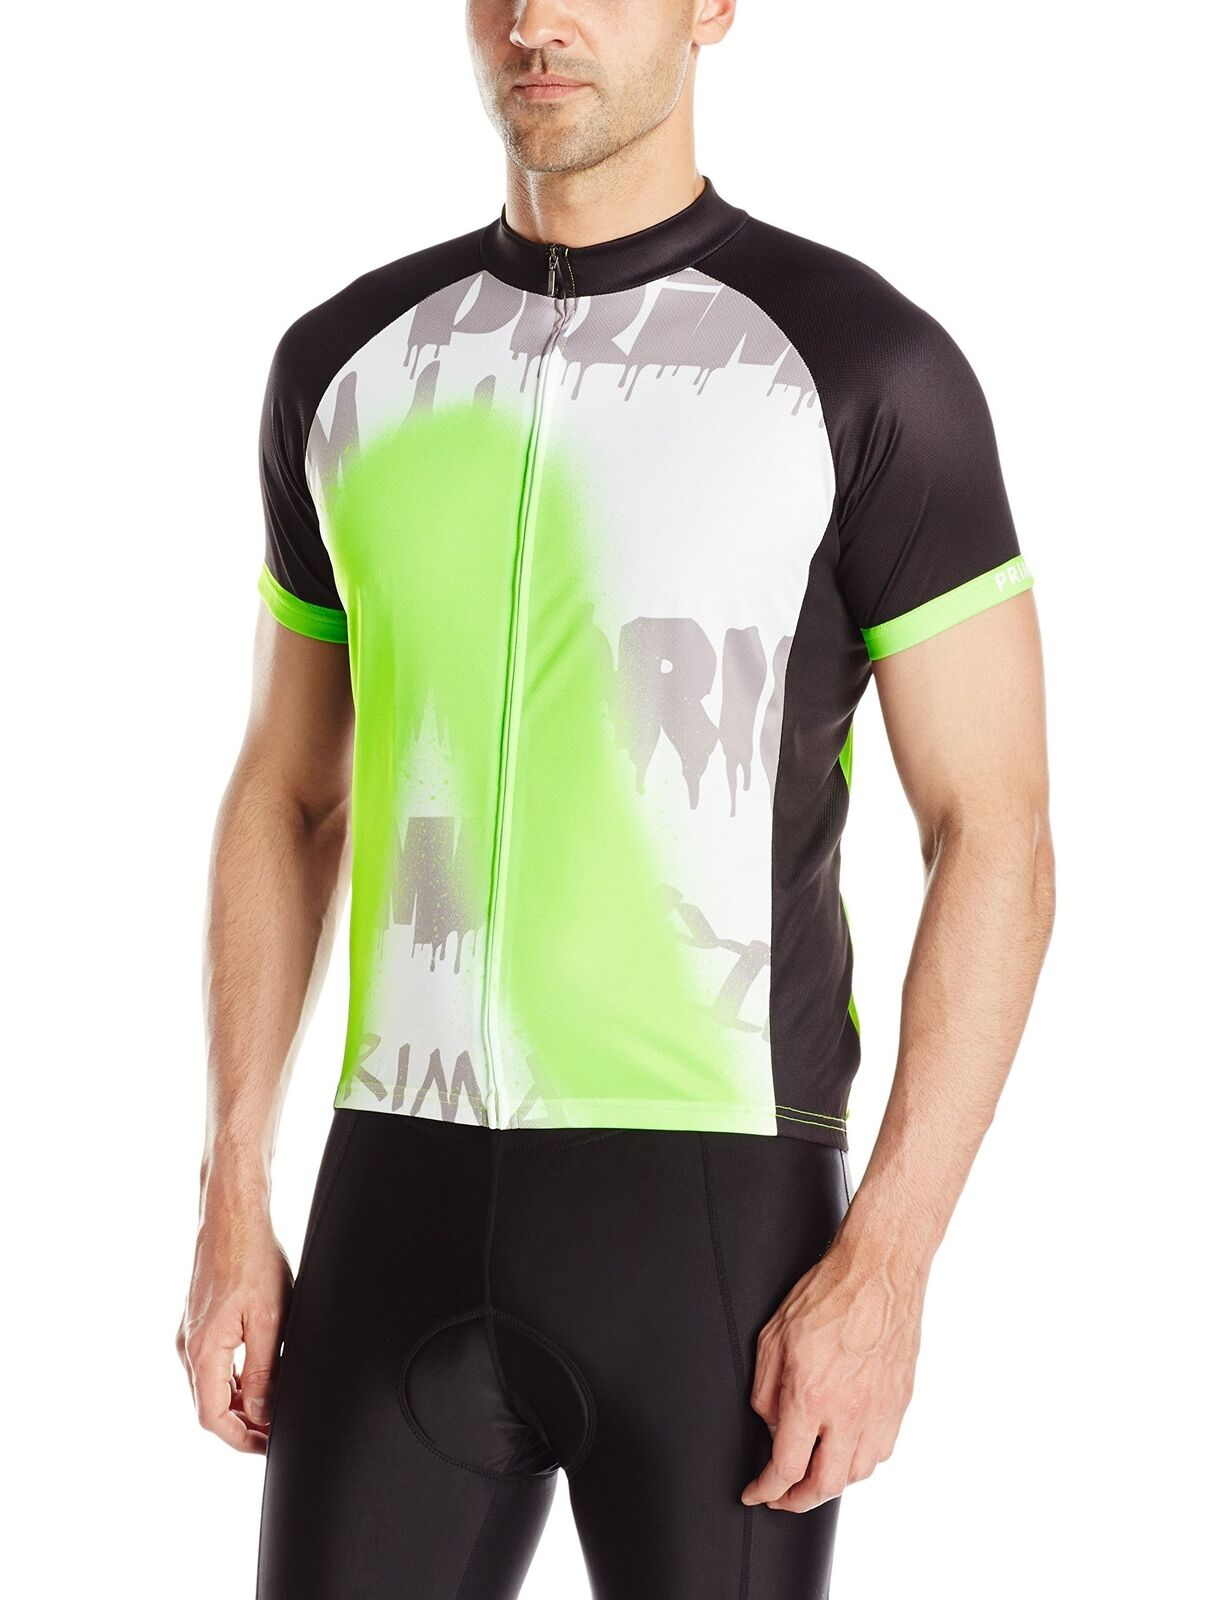 Primal Wear Men's Turnt Jersey, X-Large, Green